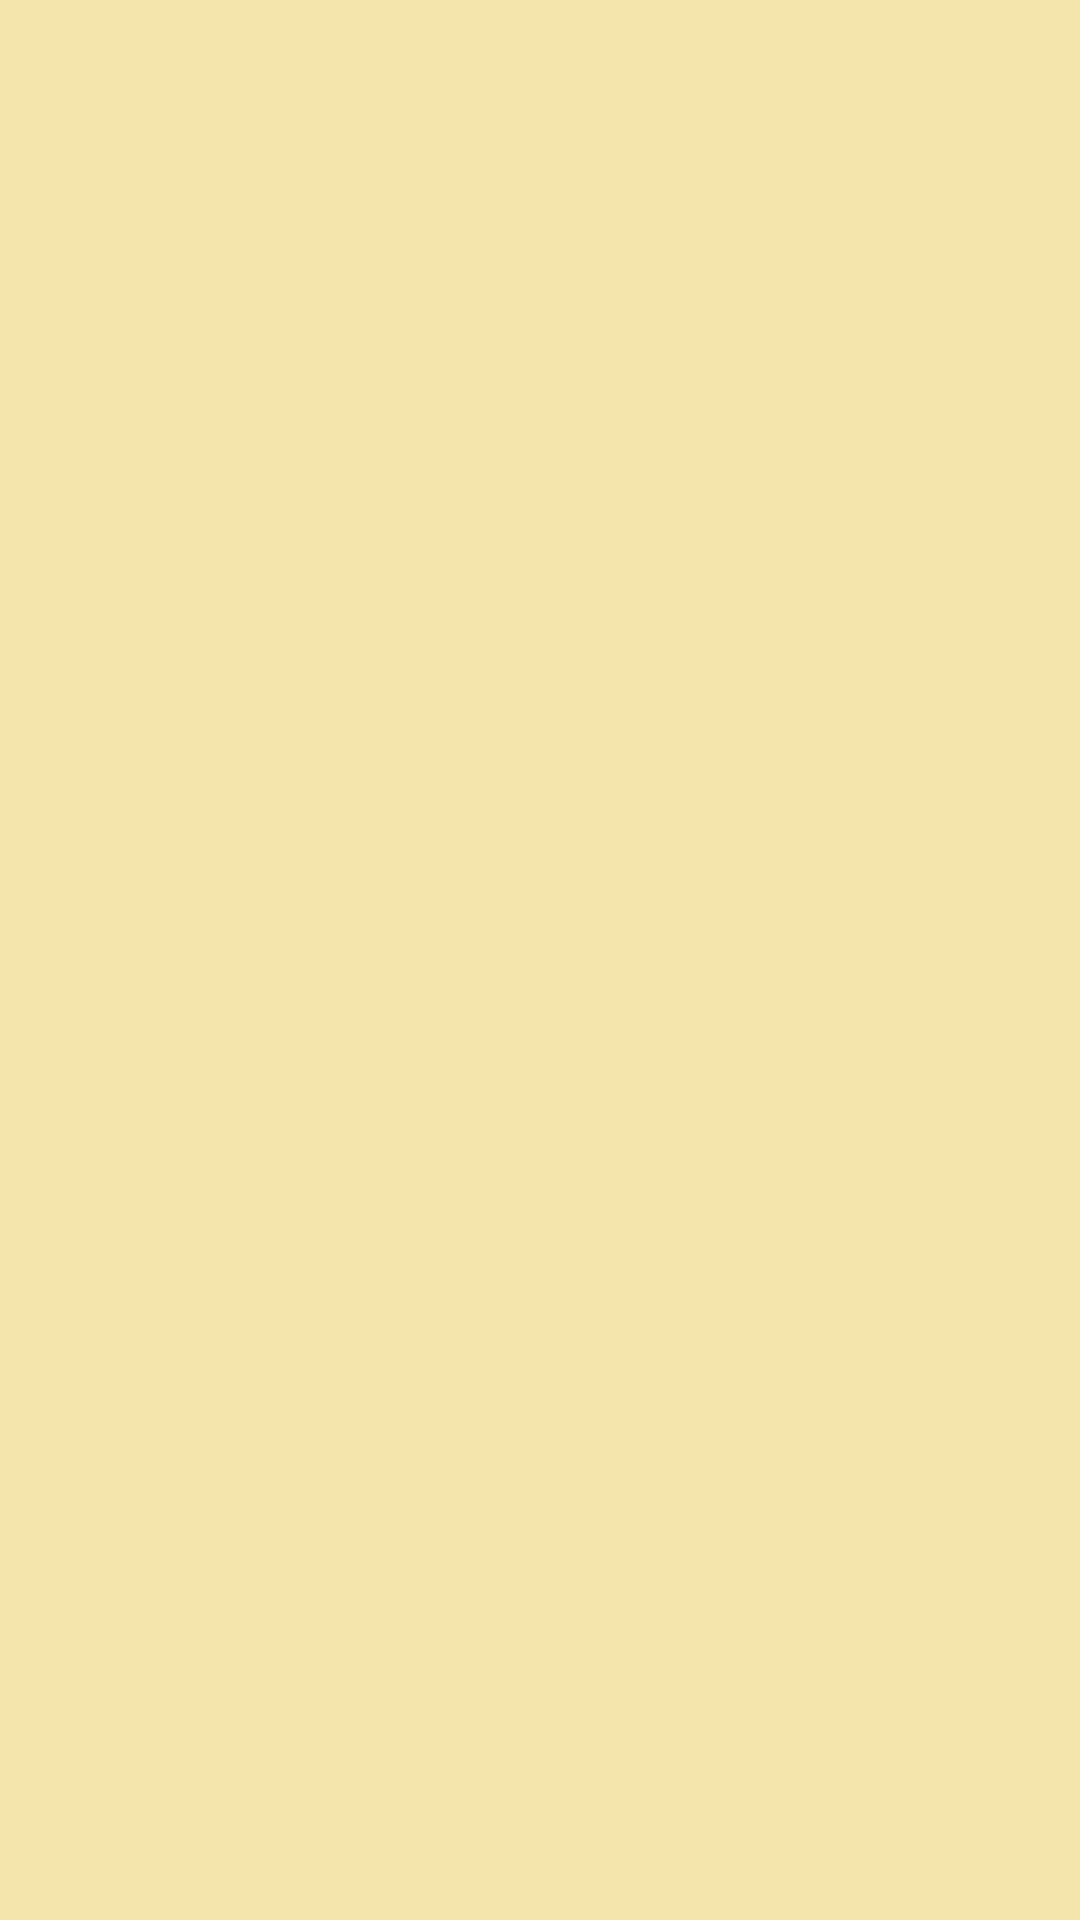 1080x1920 Medium Champagne Solid Color Background